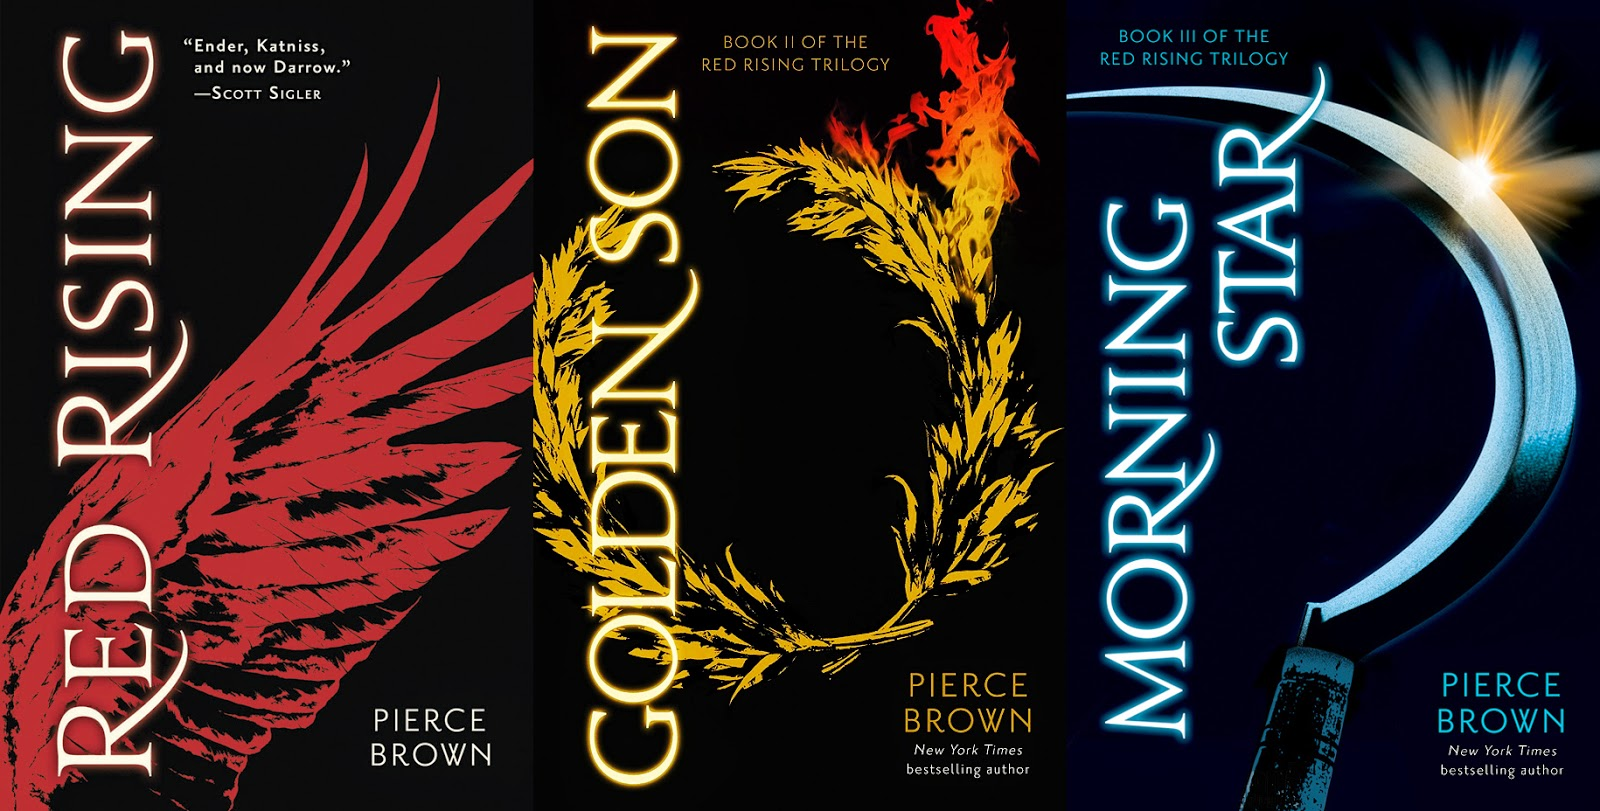 Red rising 3 morning star by superstar author pierce brown gets an ocd triggering cover